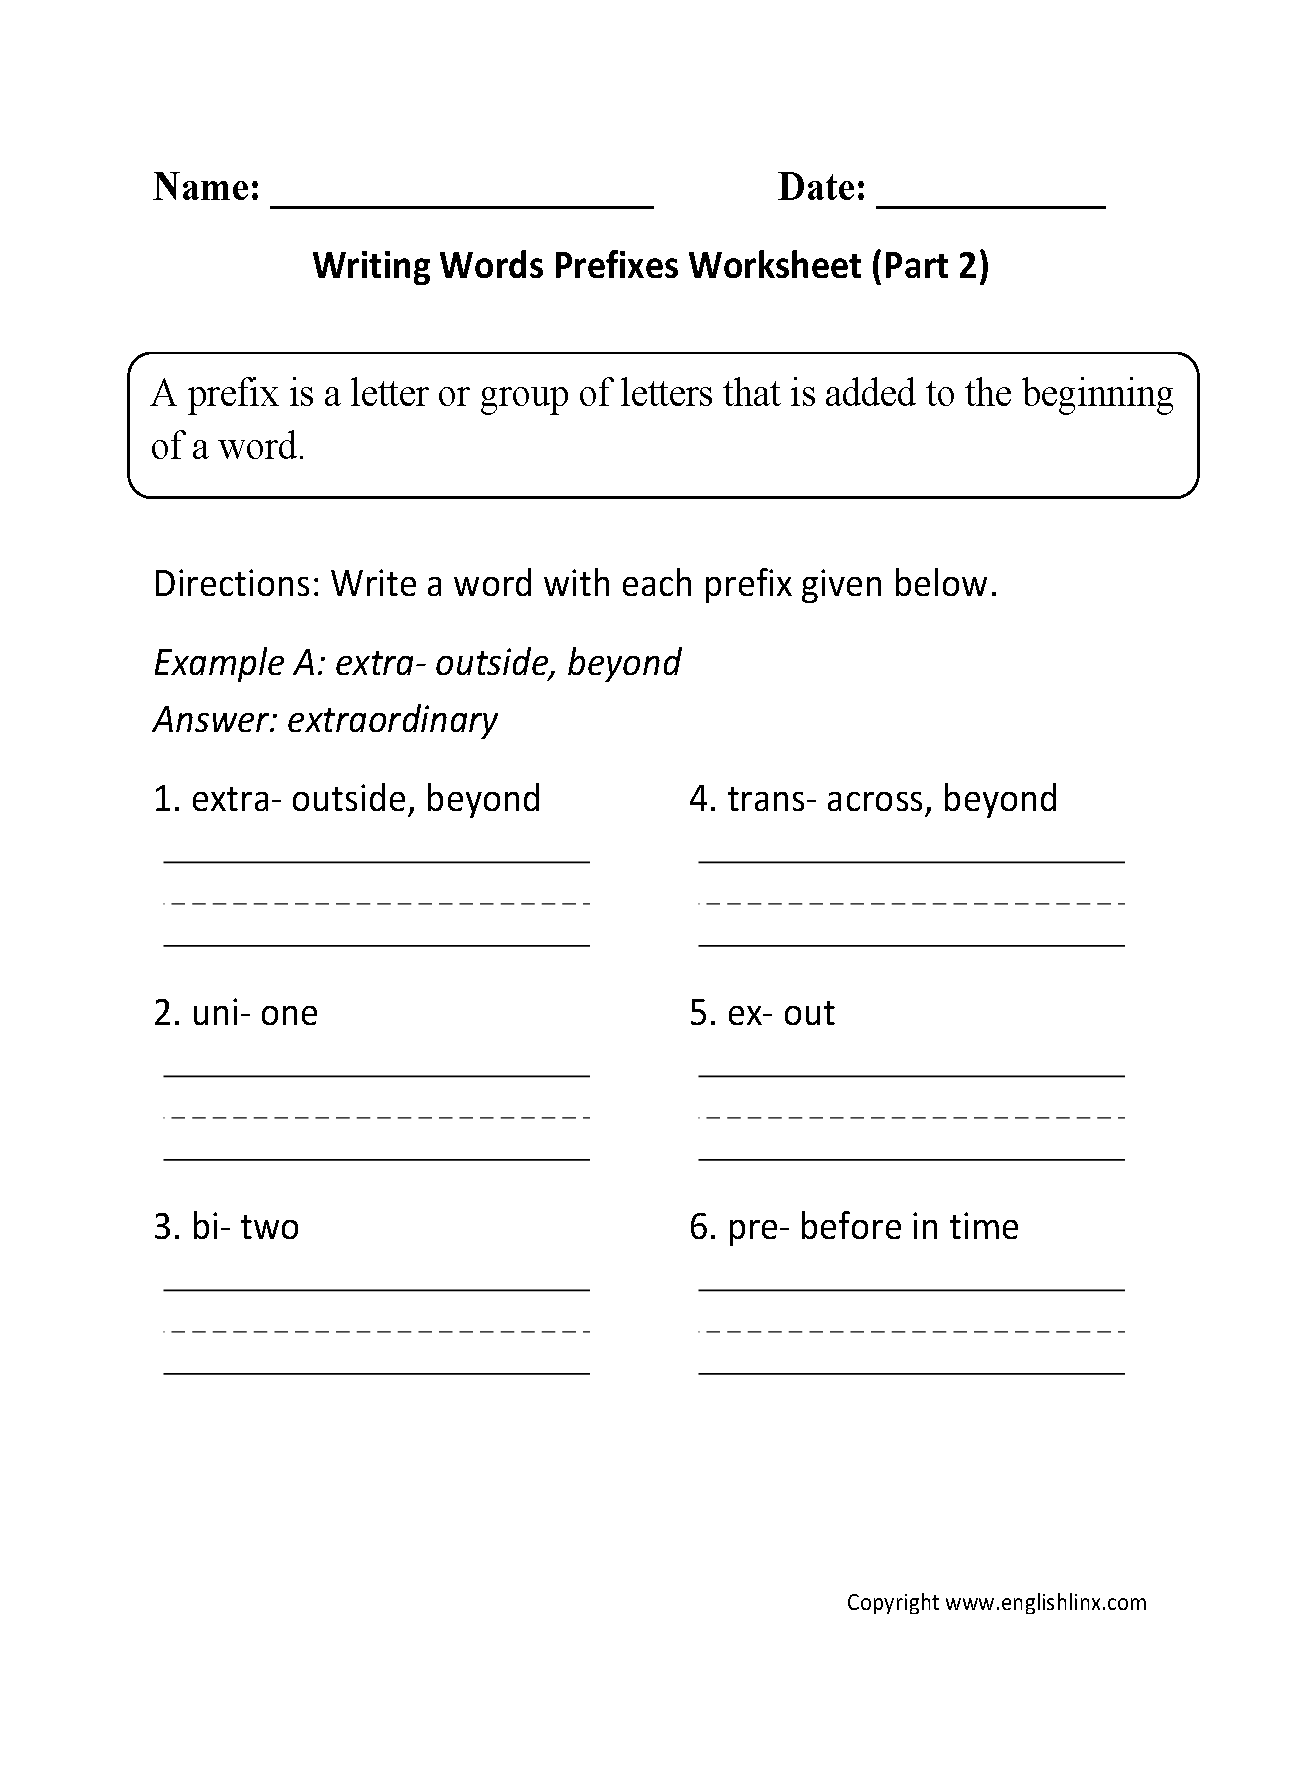 worksheet Parts Of A Letter Worksheet englishlinx com prefixes worksheets worksheet part 2